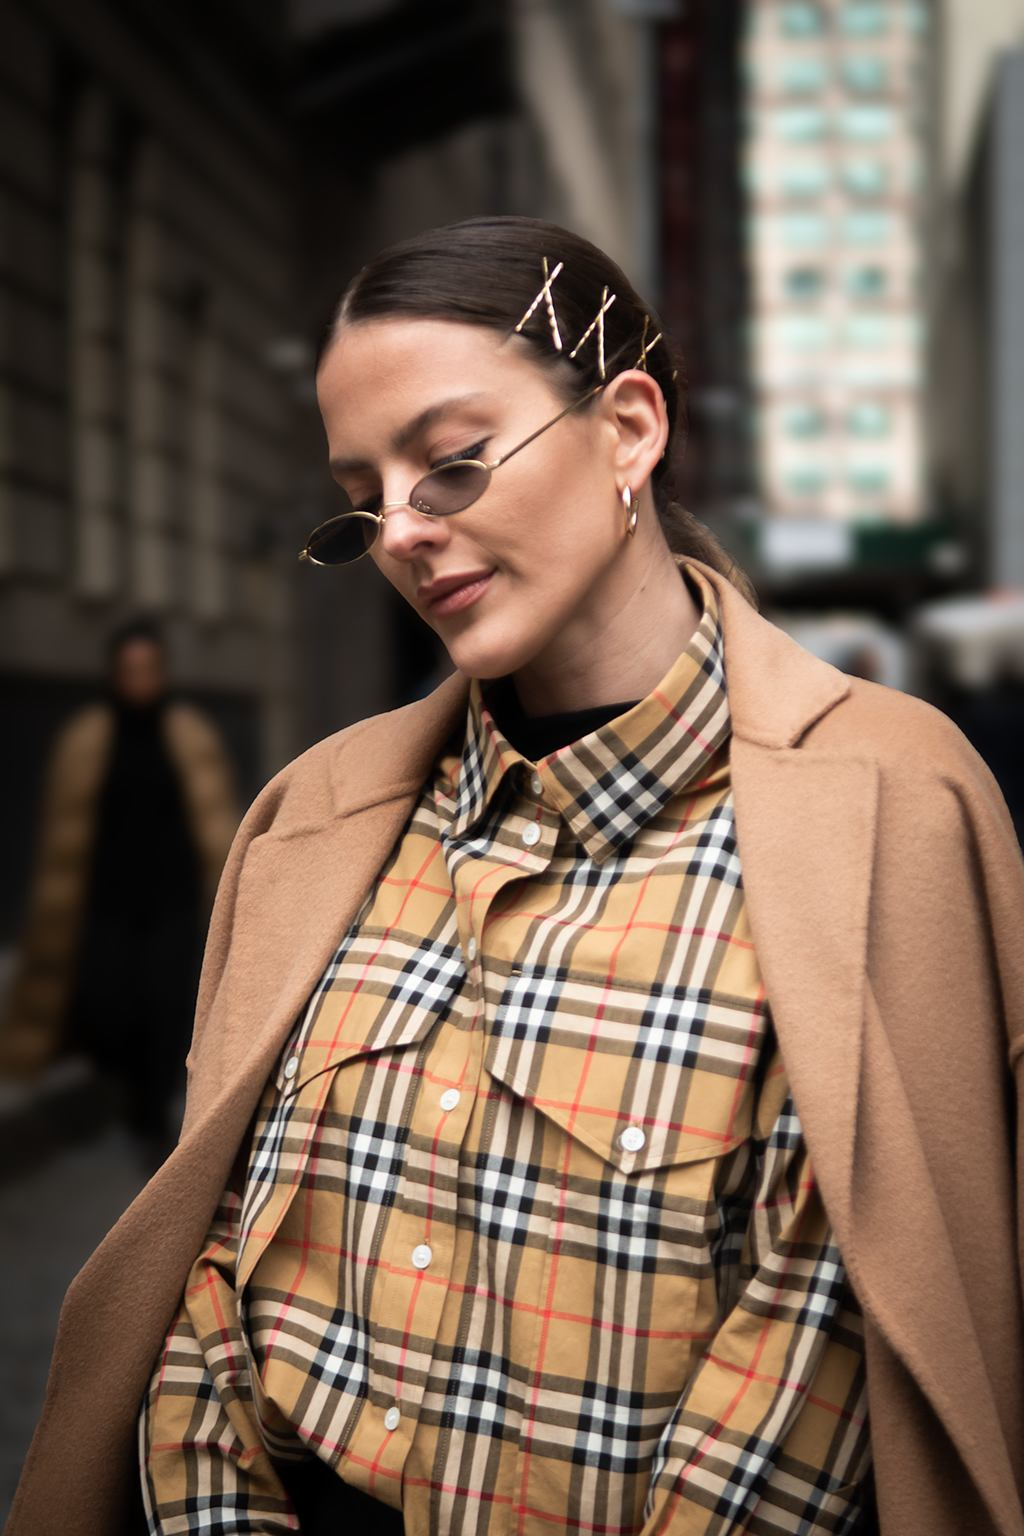 Shot of a woman with dark brown low sleek ponytail with criss cross bobby pins, wearing plaid print shirt with beige coat and mini sunglasses